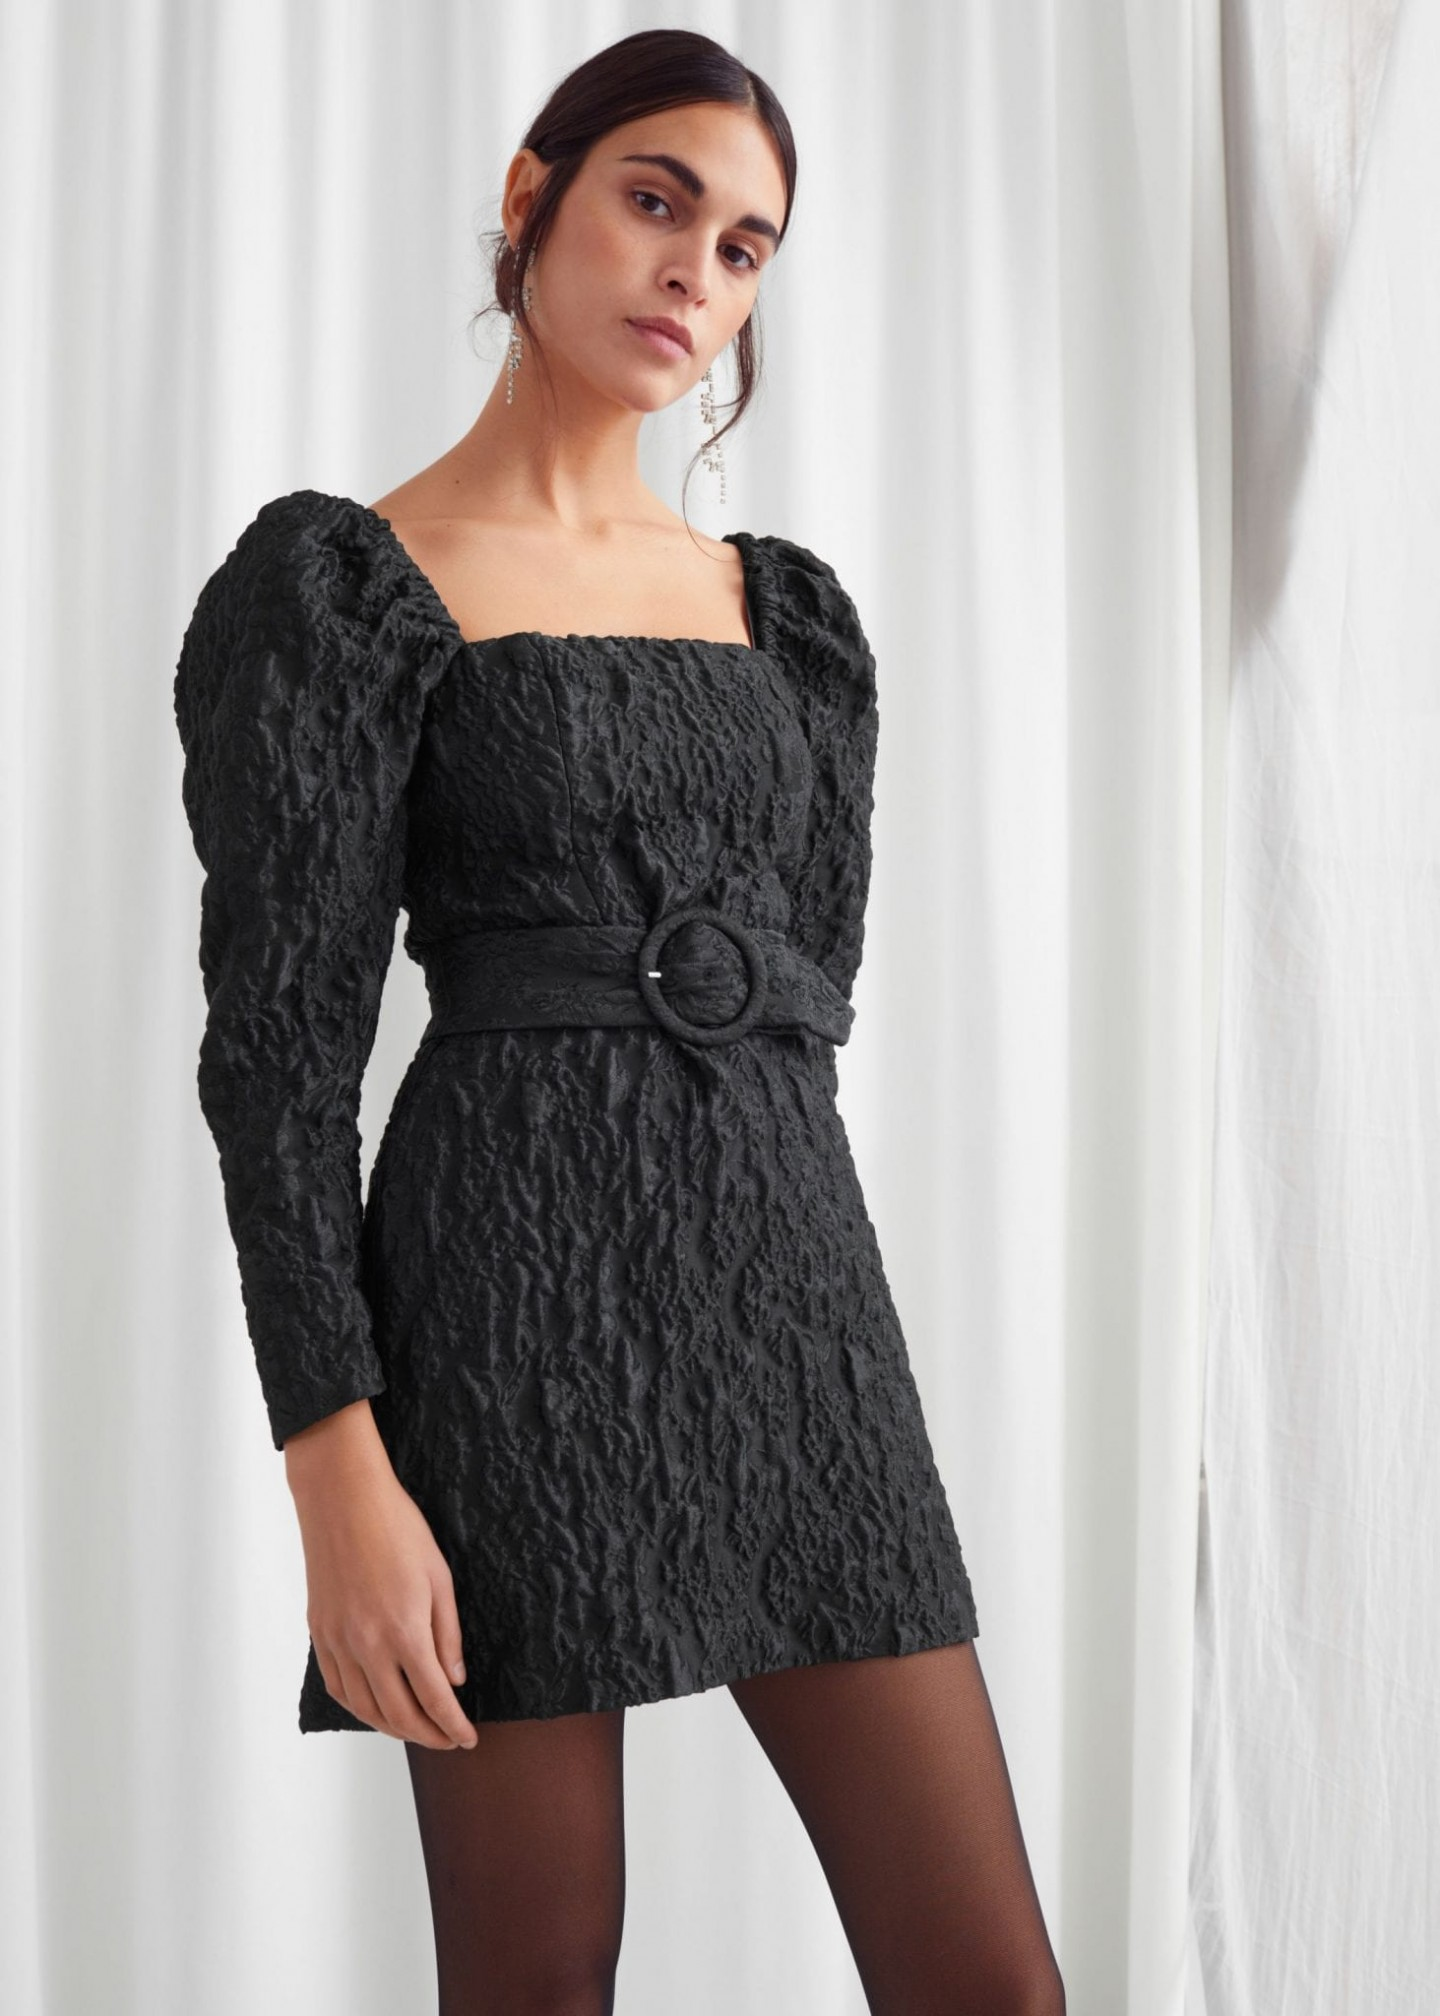 & OTHER STORIES Belted Puff Sleeve Jacquard Mini Dress